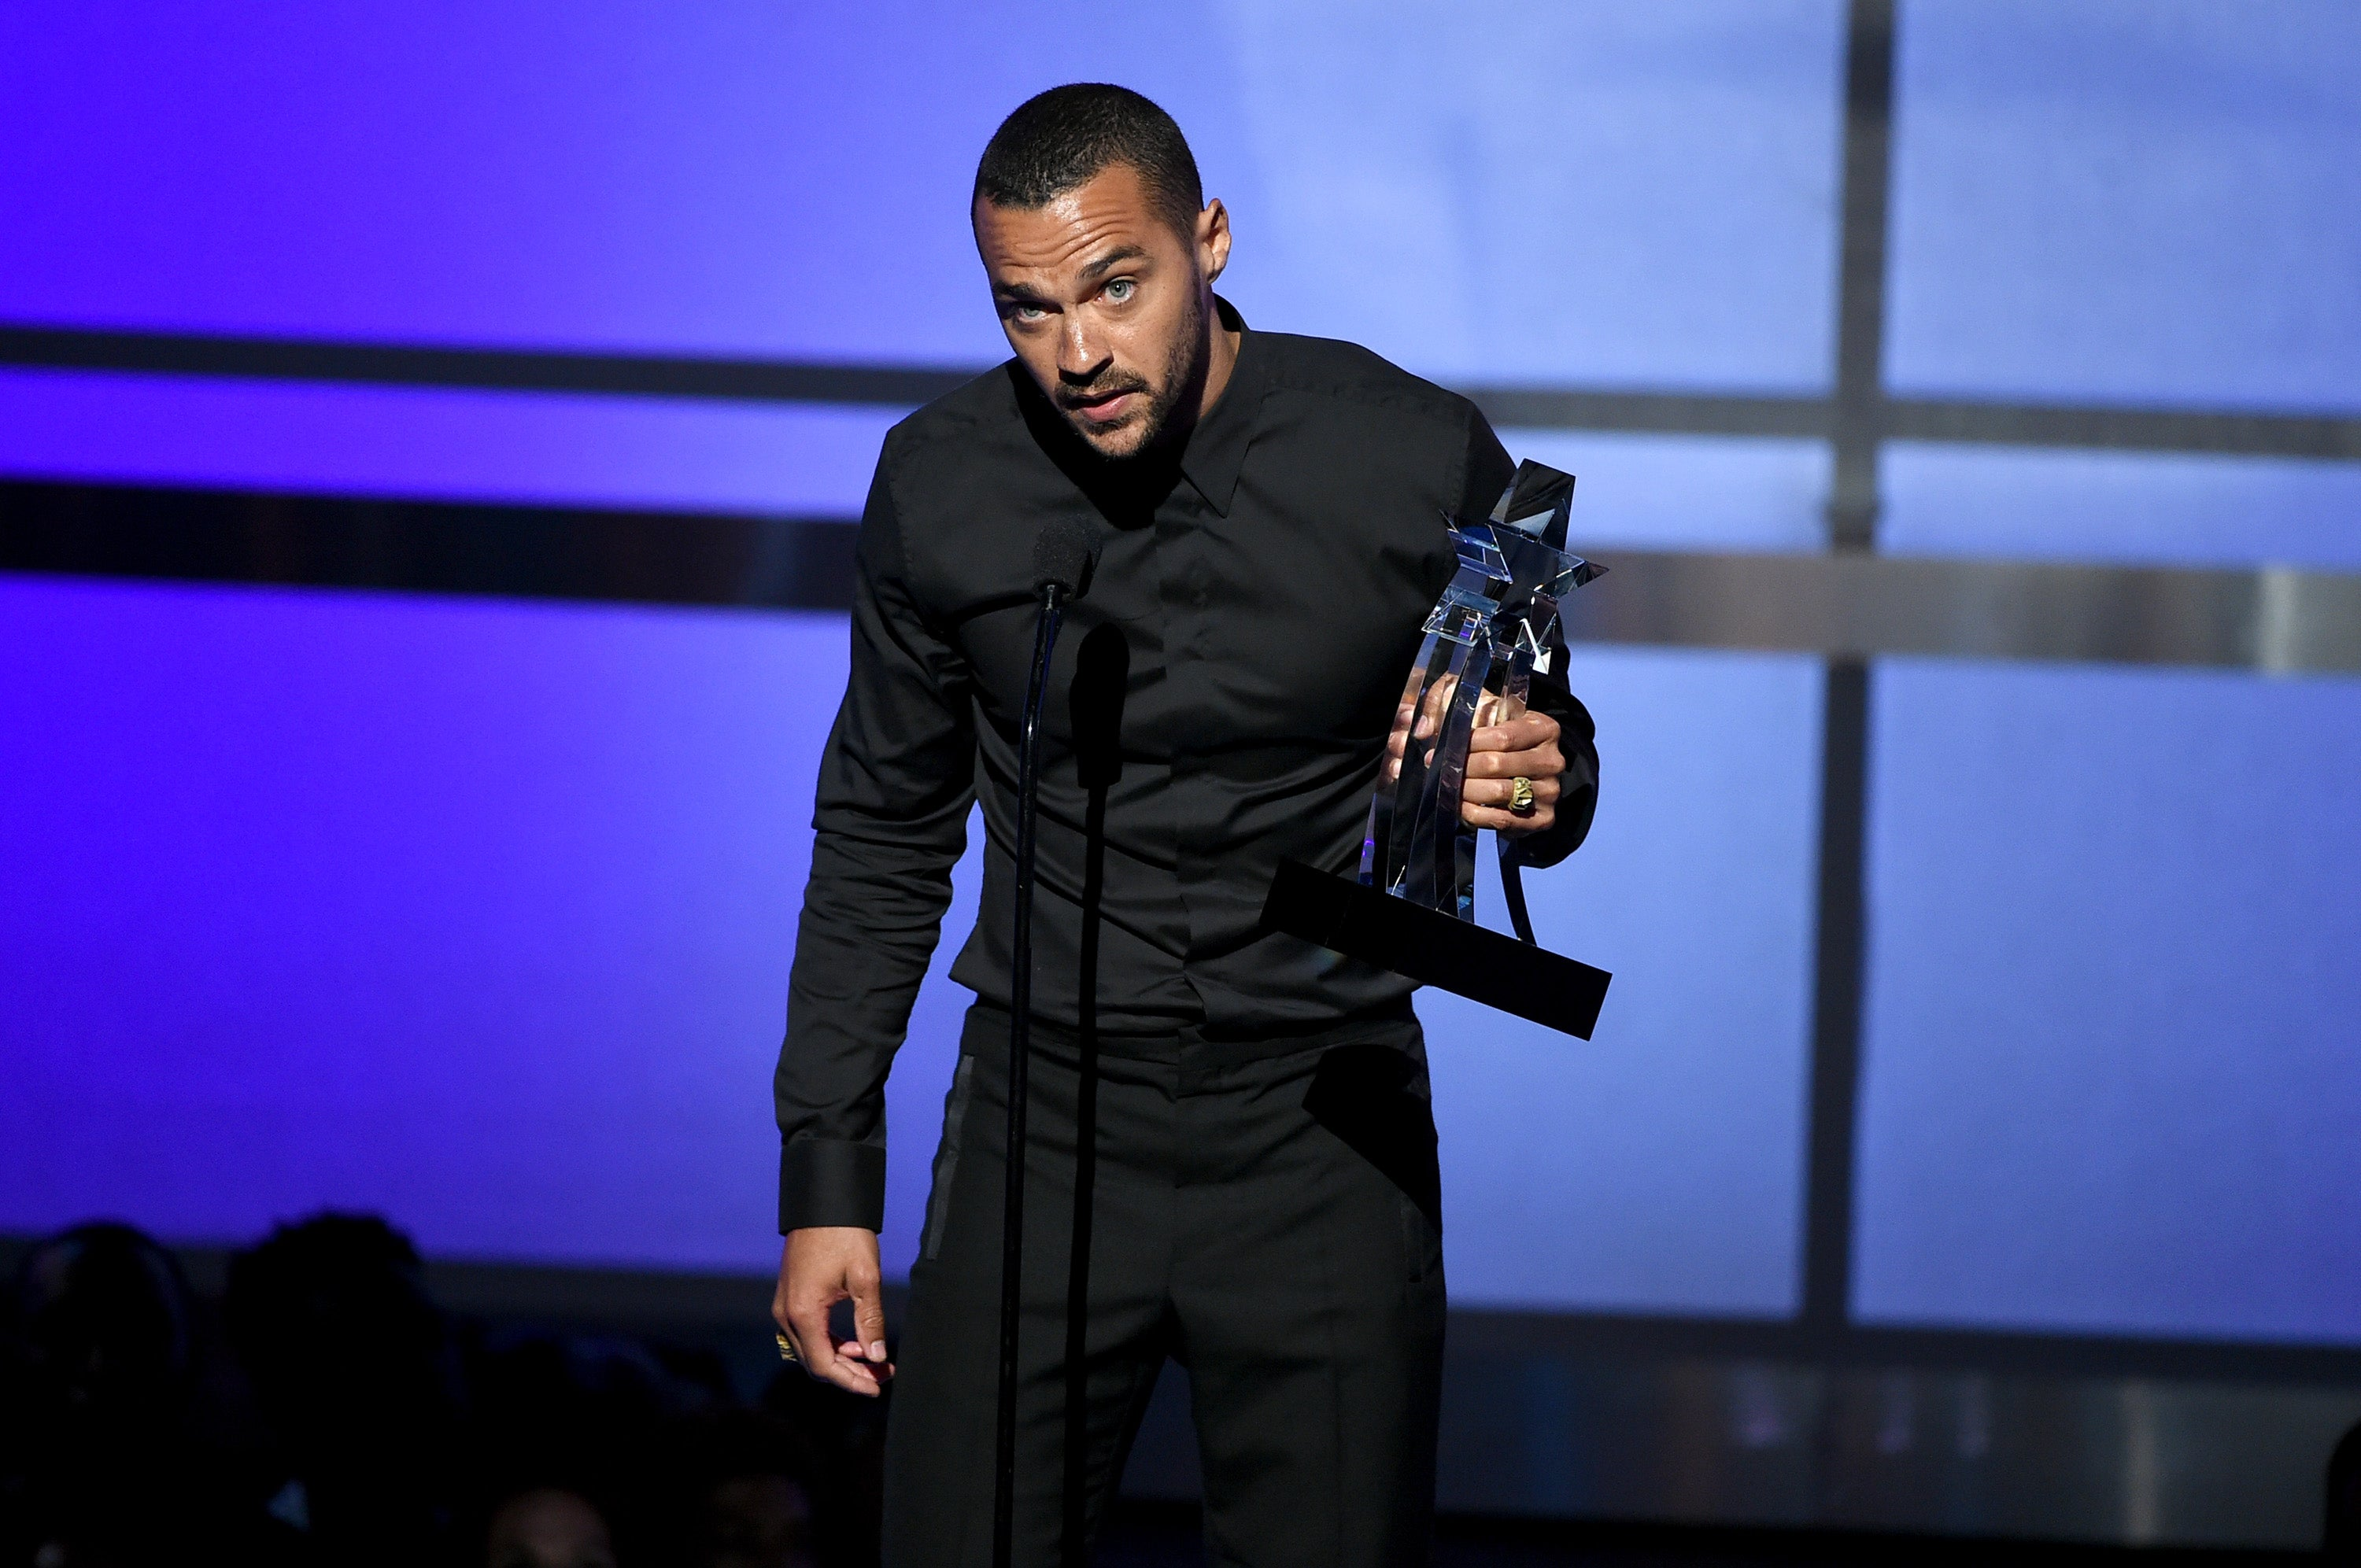 Jesse Williams Gave the Most Inspiring Acceptance Speech At the BET Awards – Read It Here